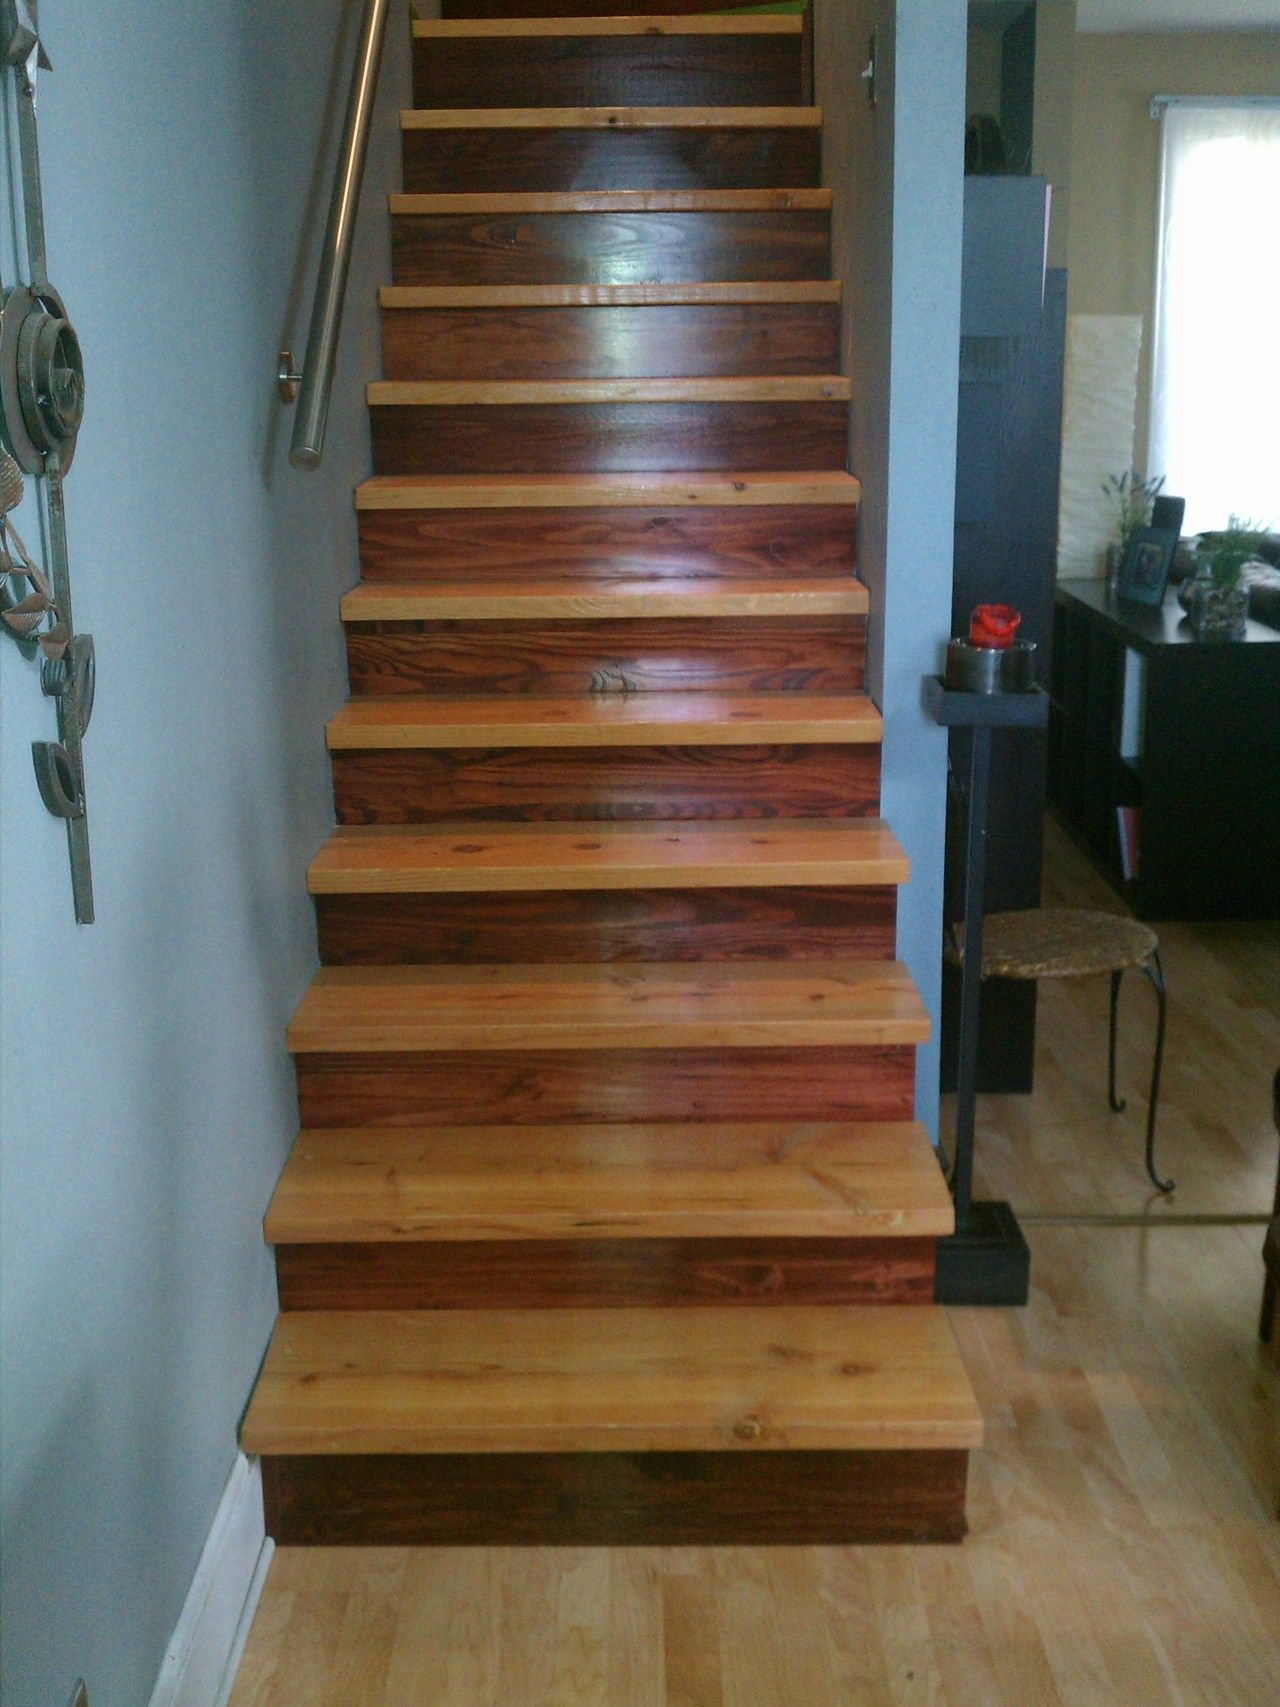 Two stain stairs diy for the home pinterest for Diy wood stairs